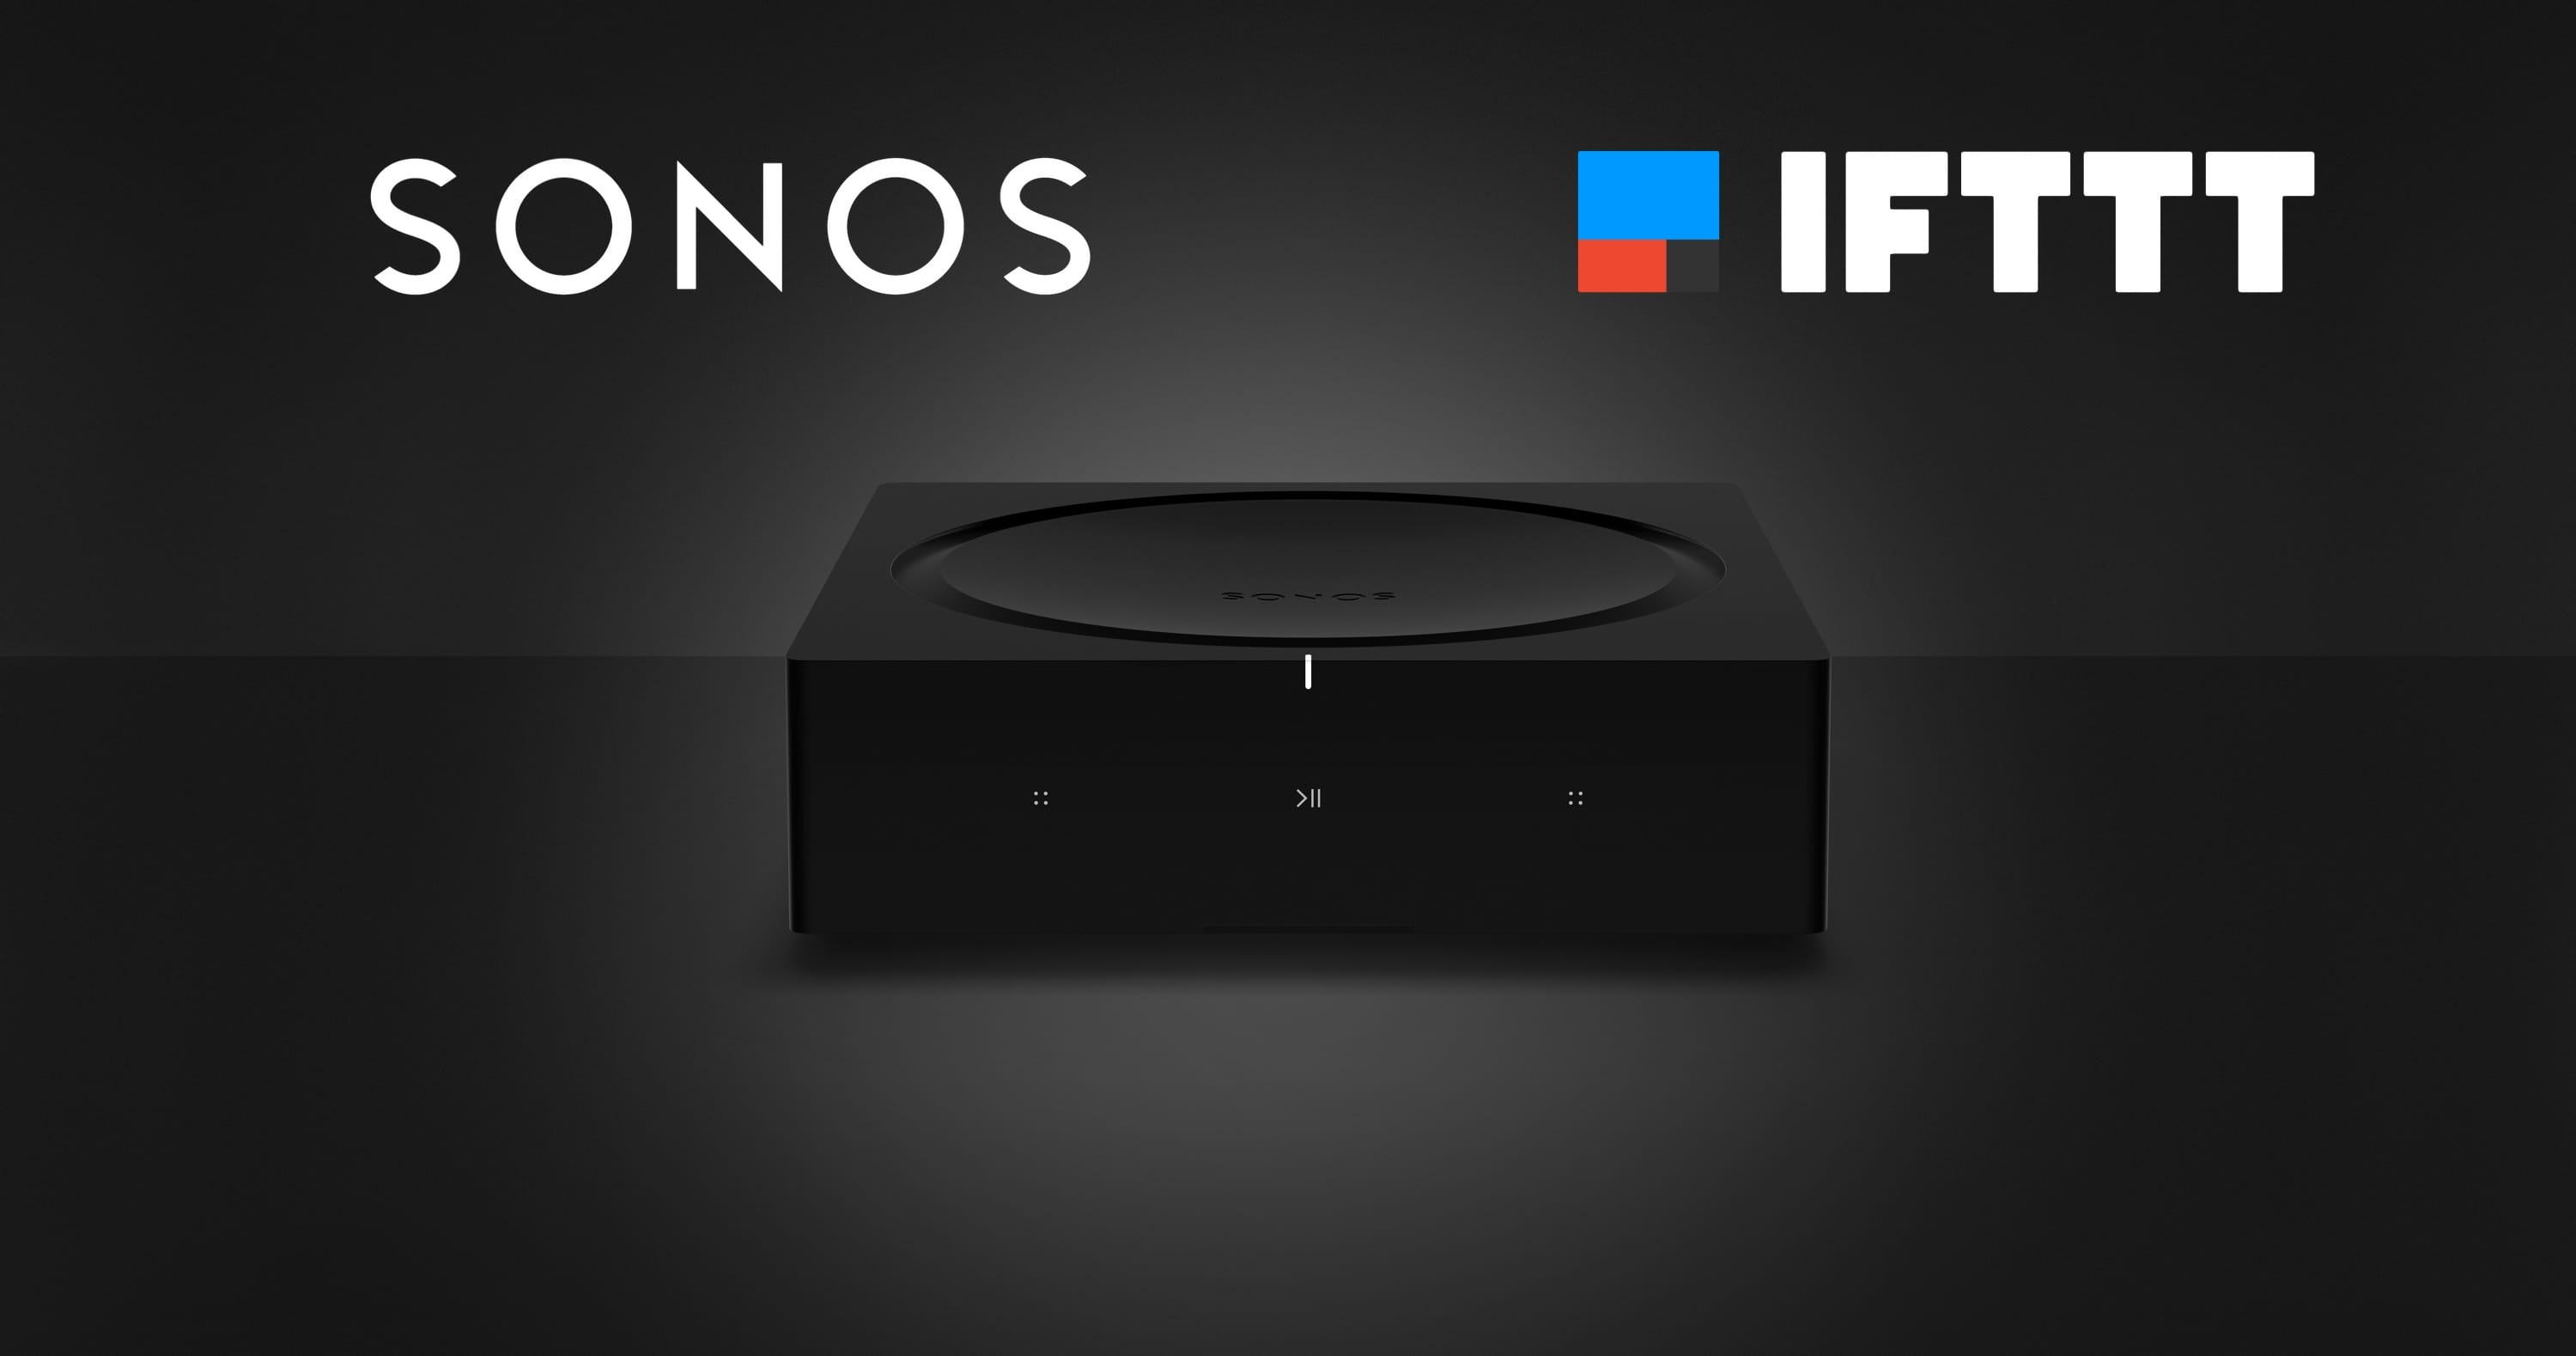 Sonos Further Expands Wireless Speakers with New APIs, IFTTT